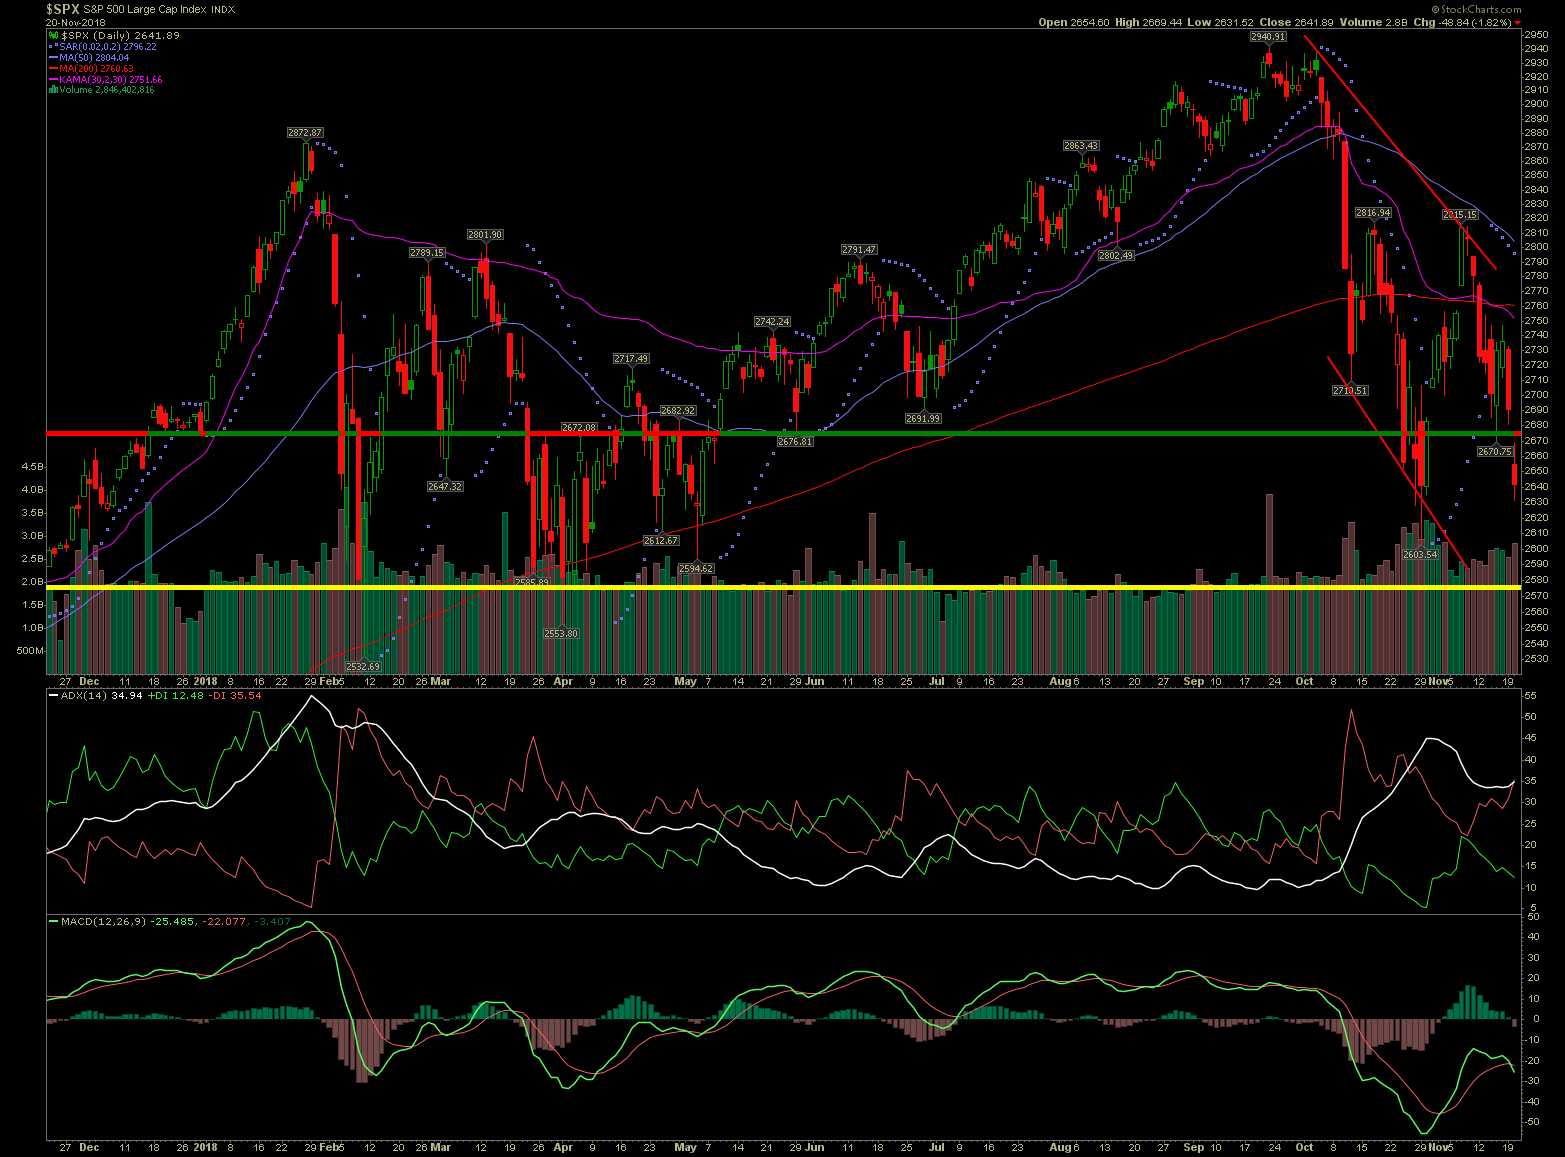 SPX Dilemma MACD Sell In Best 6 Months of the Year